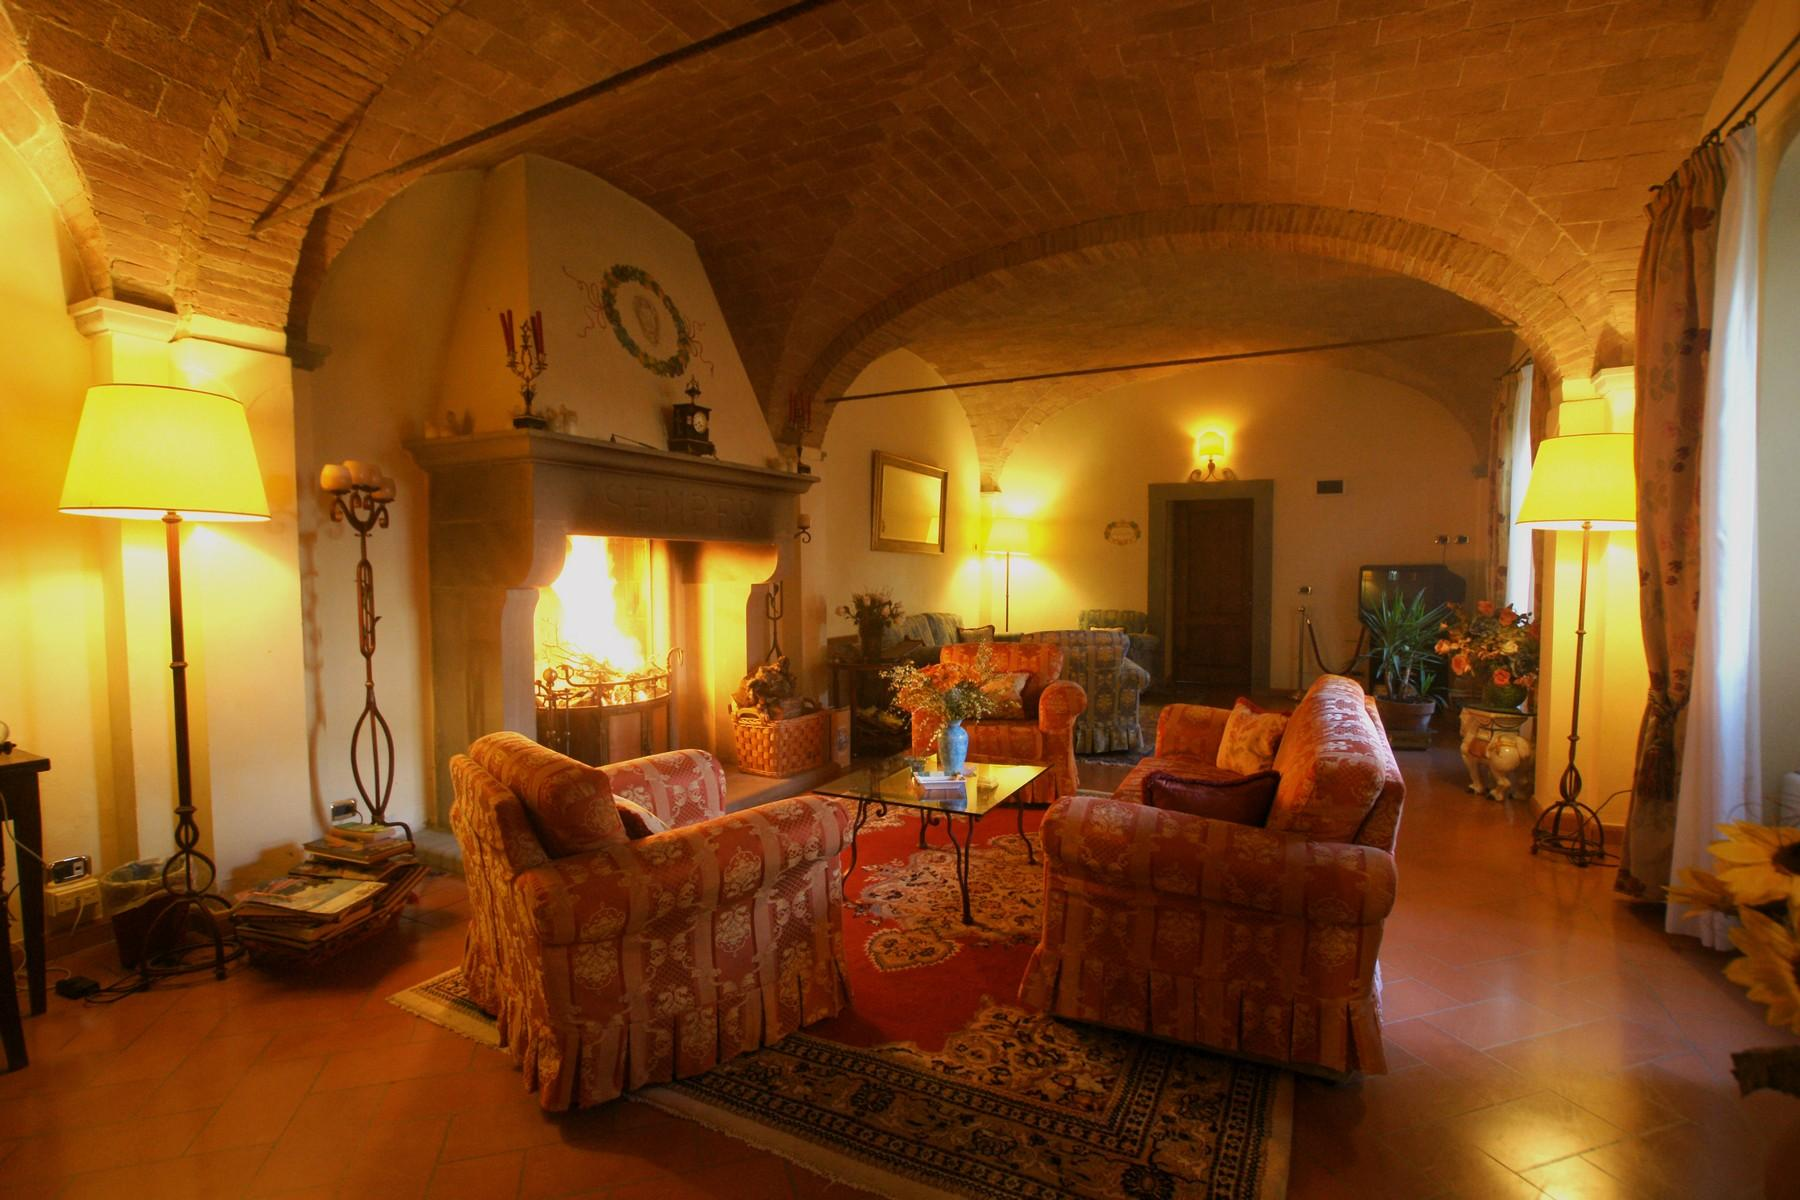 Charming holiday resort in the heart of Tuscany - 5